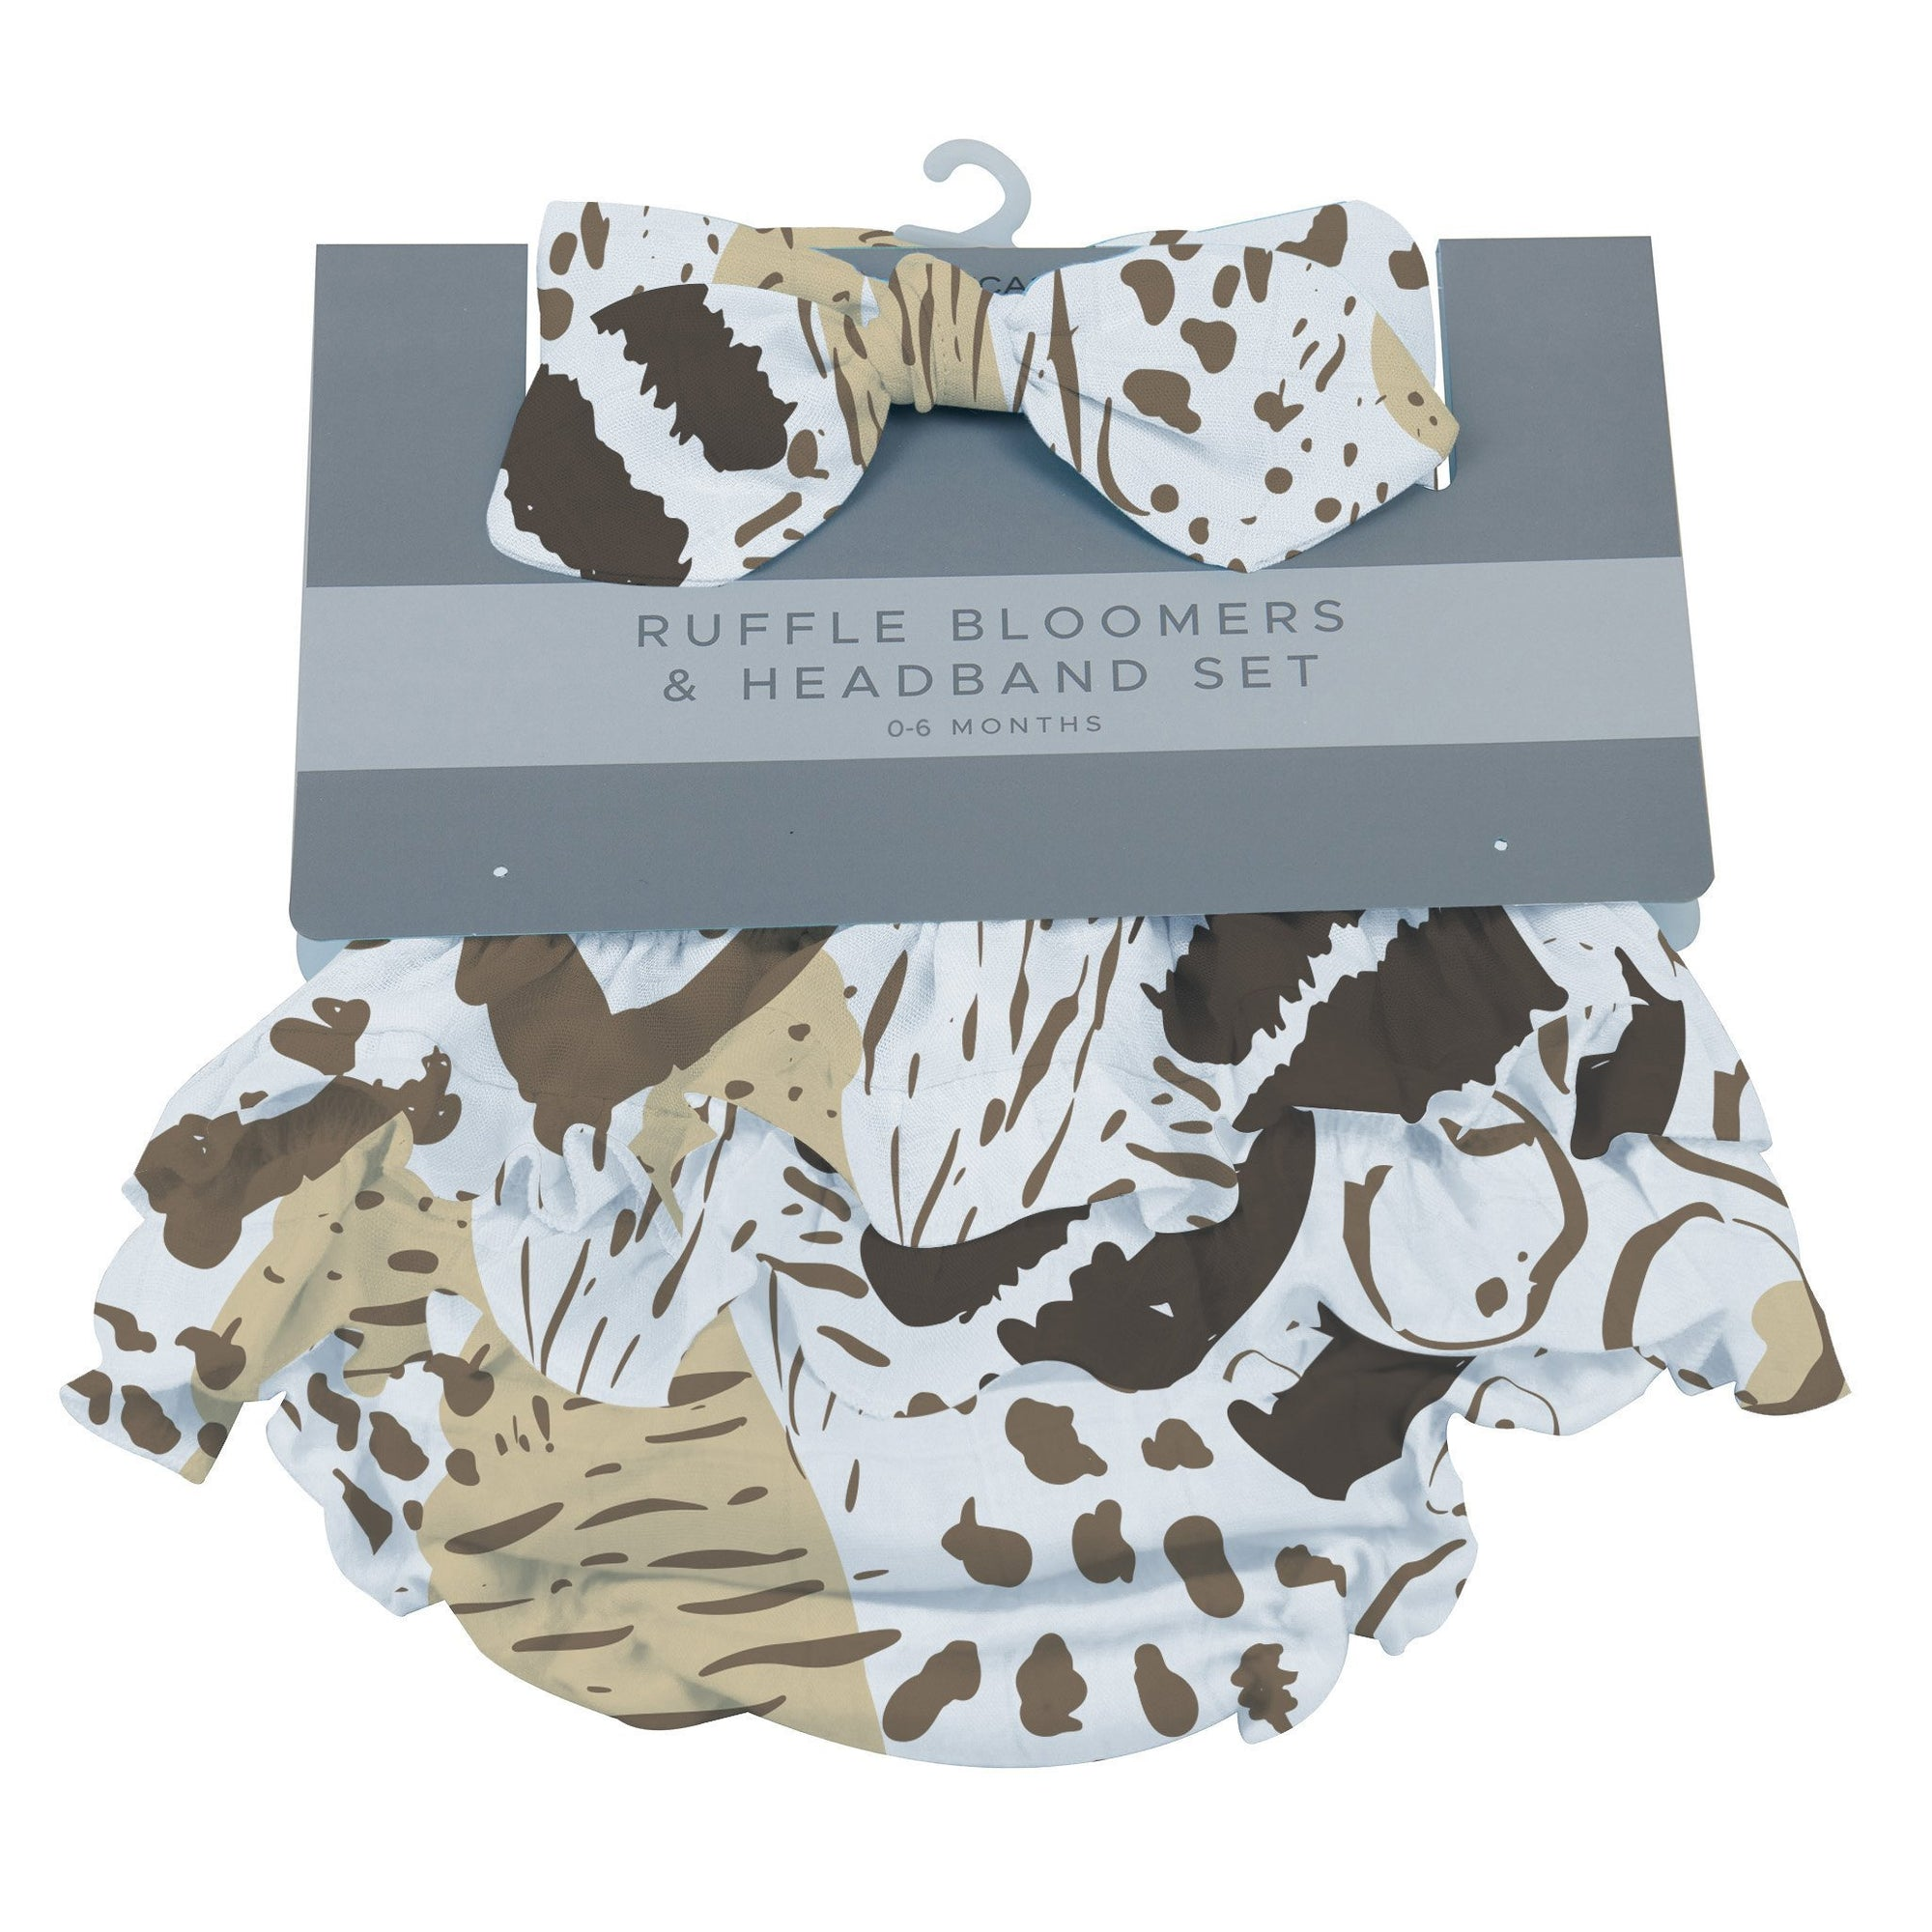 Ruffle Bloomers and Headband Set - Animal Print